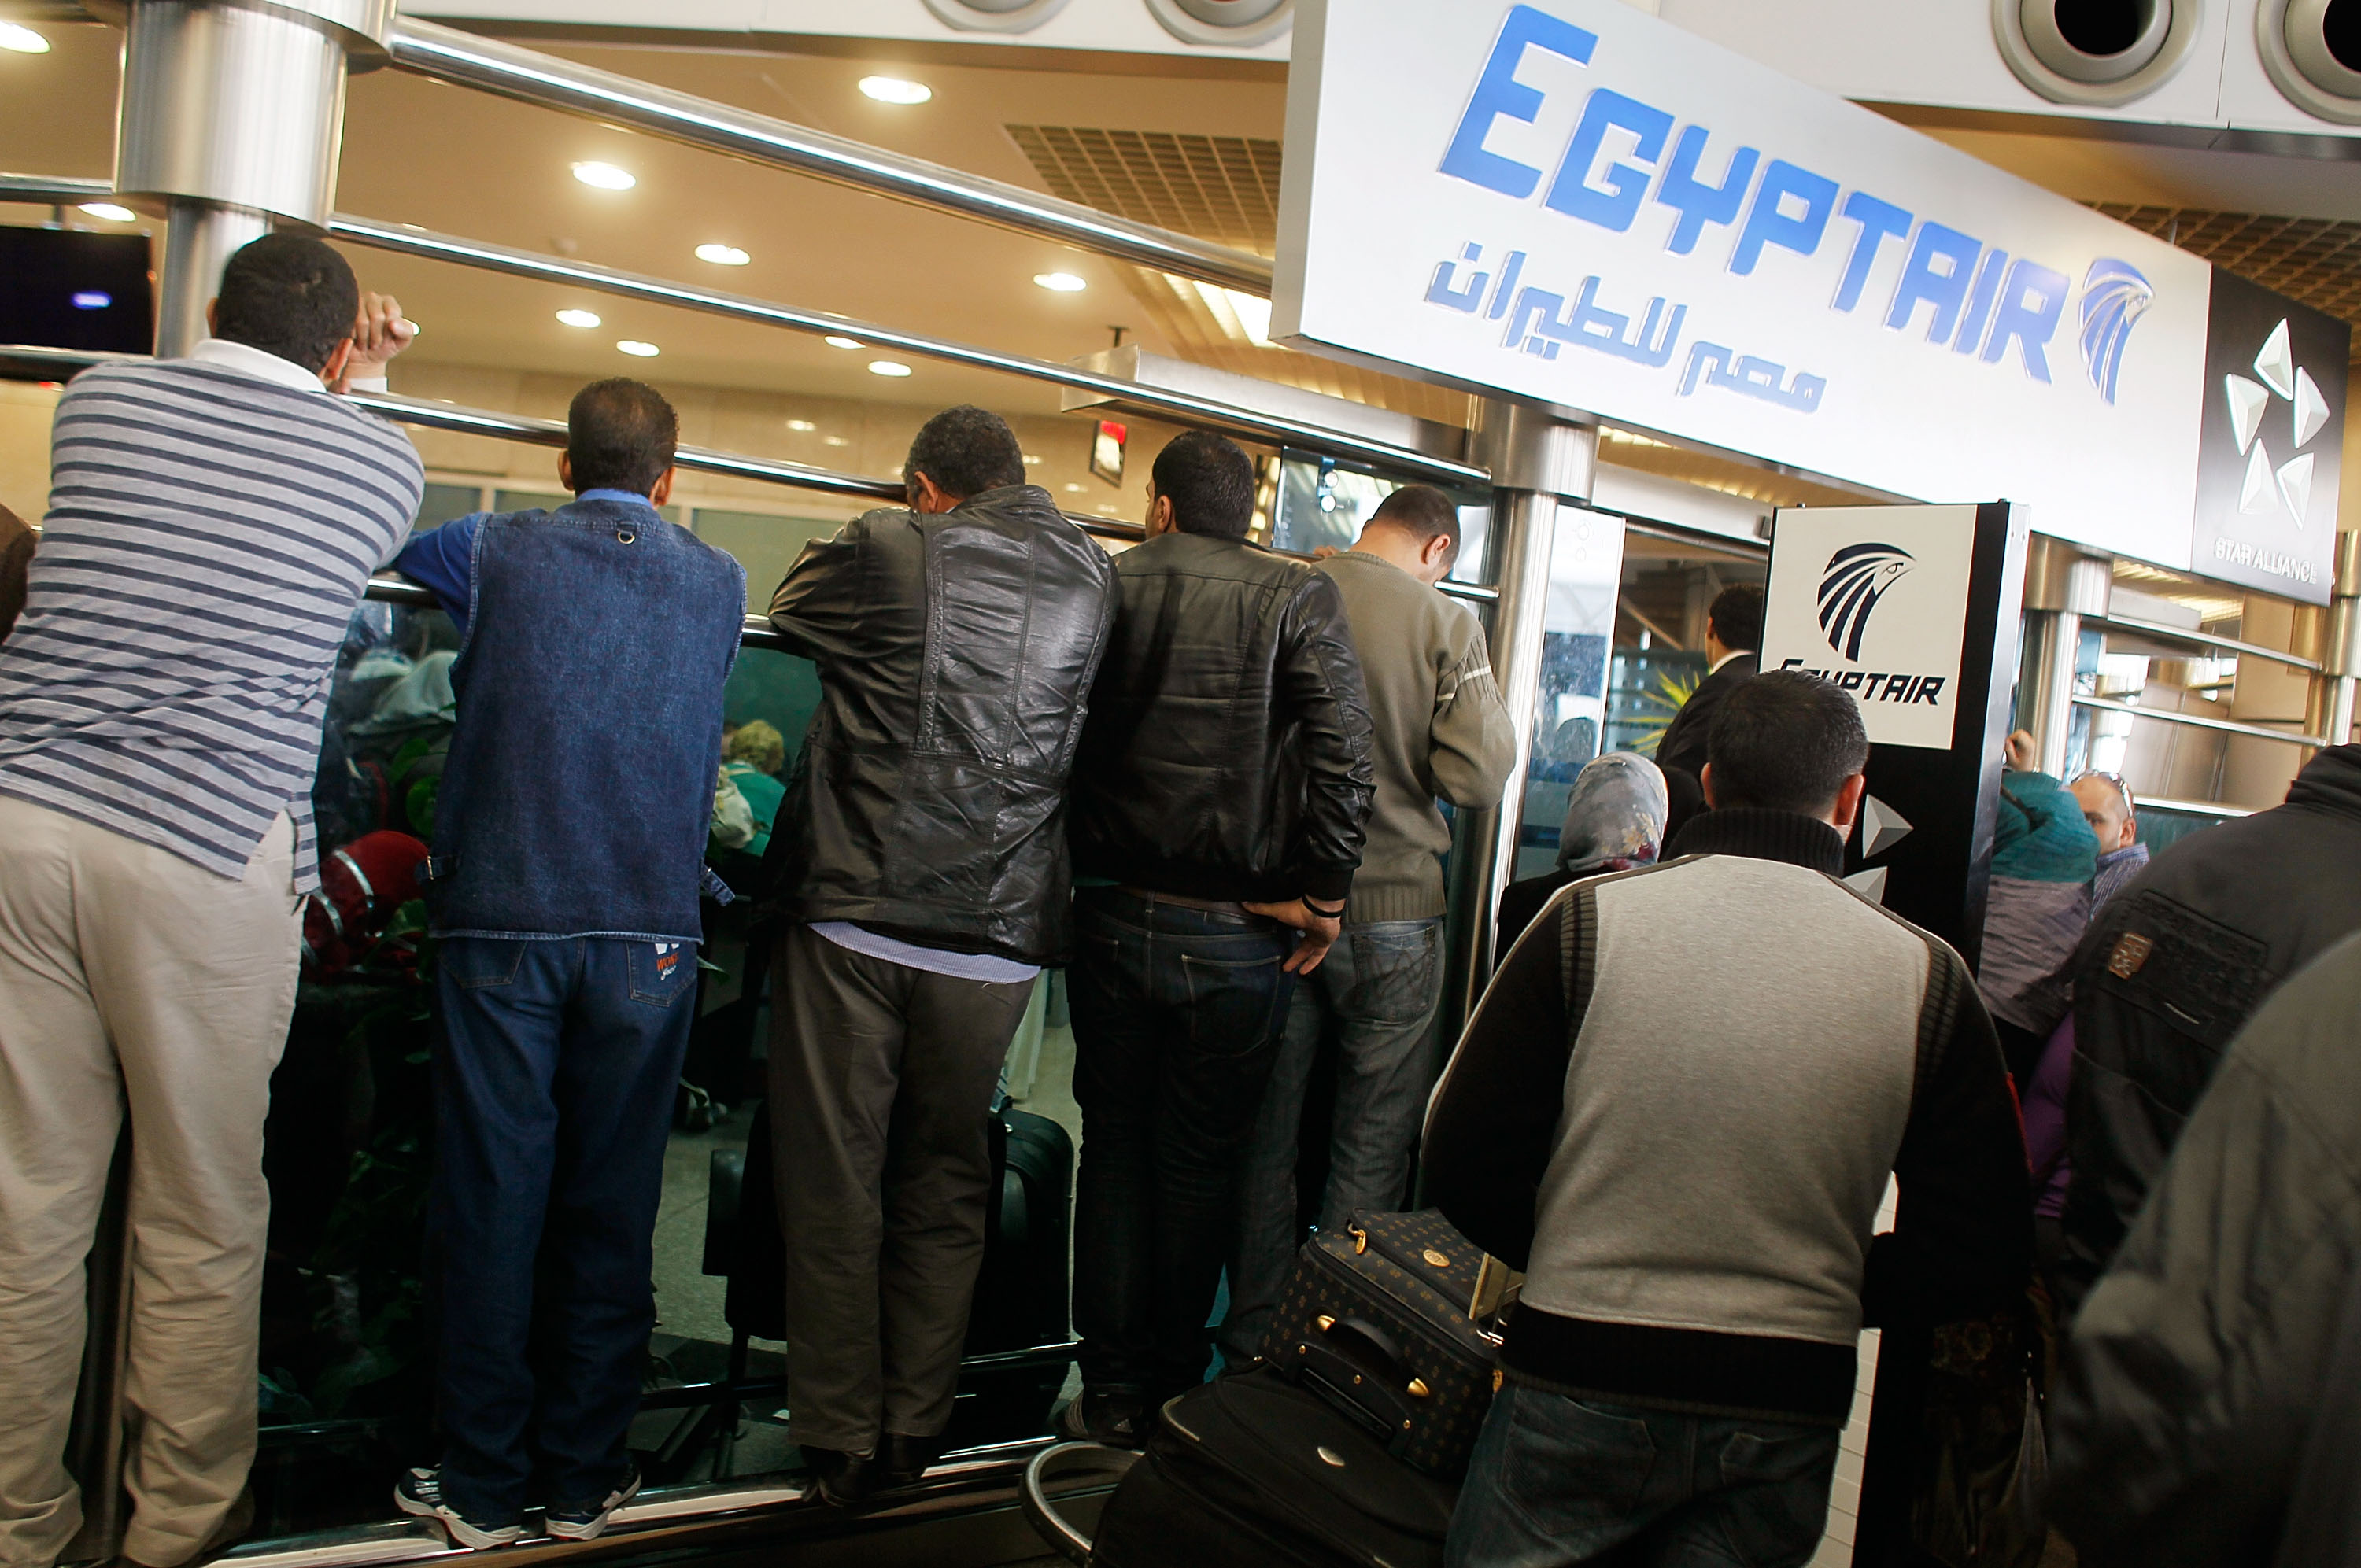 A crowd of people wait at an EgyptAir check-in counter at Cairo International Airport on January 31, 2011, in Cairo, Egypt.